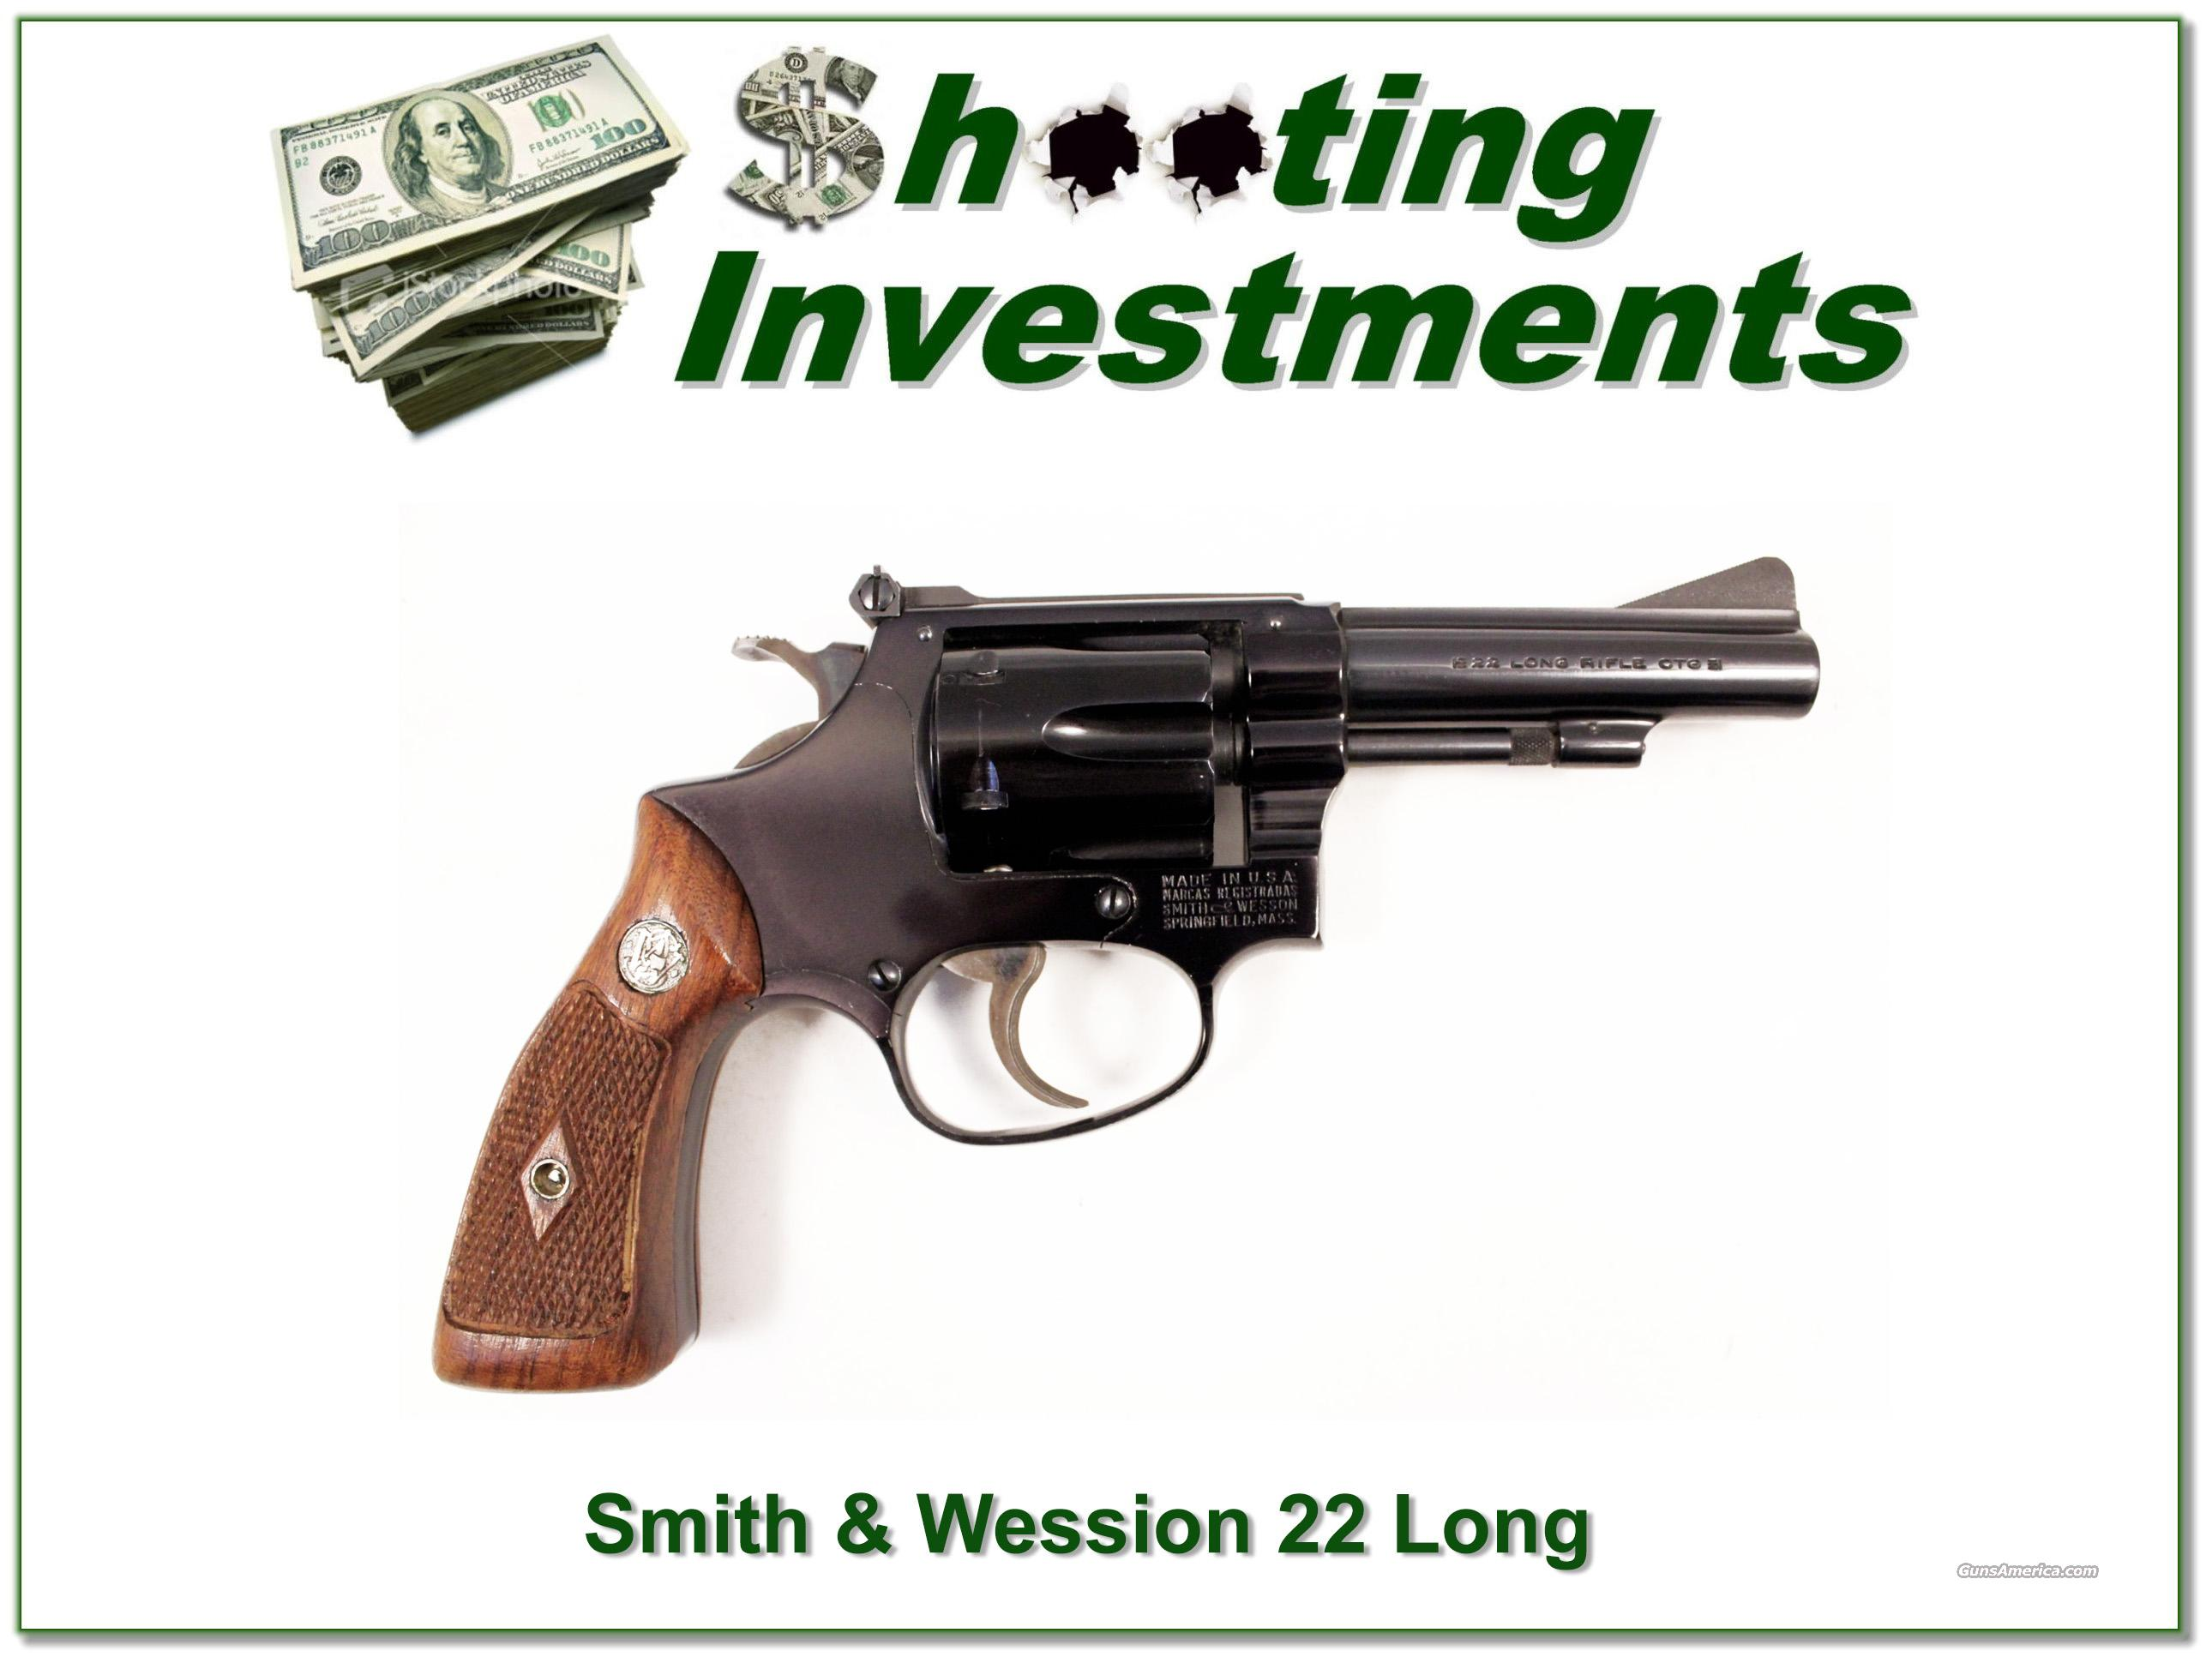 Smith & Wesson Model 43 22 3in barrel Exc Cond  Guns > Pistols > Smith & Wesson Revolvers > Full Frame Revolver